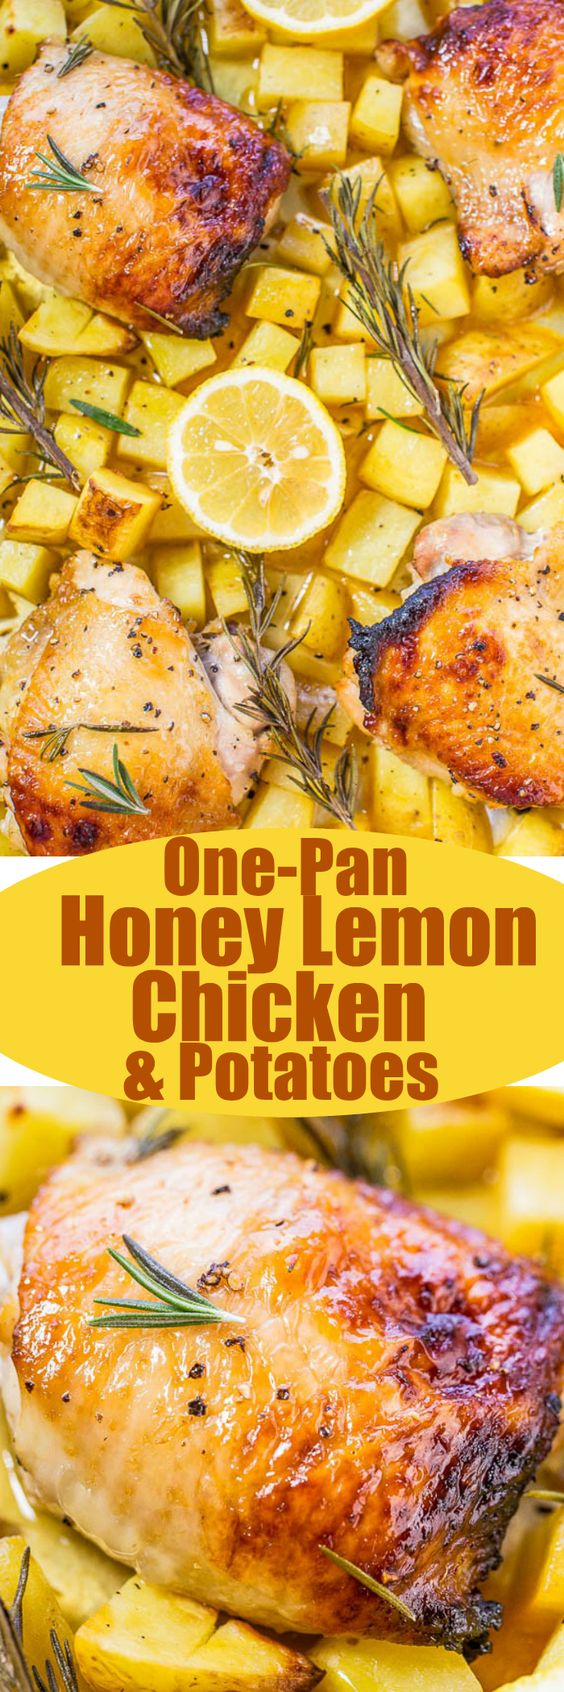 One Sheet Pan Honey Lemon Chicken and Roasted Potatoes Recipe via Averie Cooks - Juicy chicken with a honey lemon glaze that's tangy-sweet and so good!! Healthy, fast, so easy, and cleanup is a breeze!! #sheetpansuppers #sheetpanrecipes #sheetpandinners #onepanmeals #healthyrecipes #mealprep #easyrecipes #healthydinners #healthysuppers #healthylunches #simplefamilymeals #simplefamilyrecipes #simplerecipes